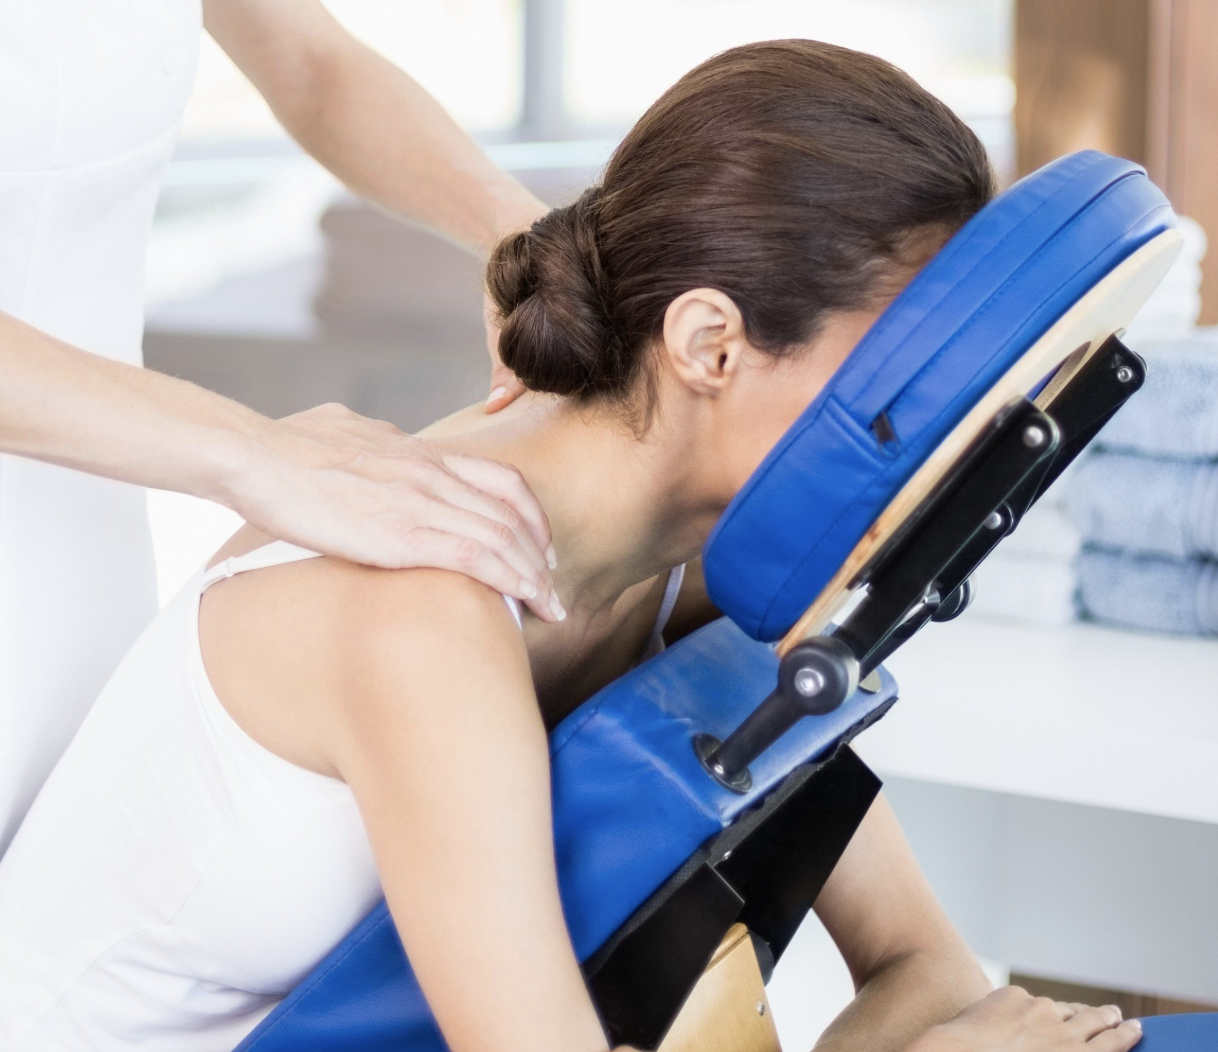 Chair Massage - 1) Sporting Events – While athletes are prime candidates for massage, it can be a challenge encouraging them to visit your medical practice.  High level sporting competitions are the perfect venue for setting up a massage chair! Let our highly skilled staff promote your business and beneficial services!2) Expos, Shows and Conventions – Typically housed in large, sprawling spaces, these events require people to be on their feet or in a chair all day long. Perfect exposure for massage and reaching large audiences! 3) Business & Corporate Offices - Benefits include increased productivity and retention rates, decreased absenteeism and ergonomic-related injuries, and lowered employee stress levels.4) Implement A Wellness Program In Your Company - Keep your employees feeling energetic, productive, and feeling good about themselves and their career.